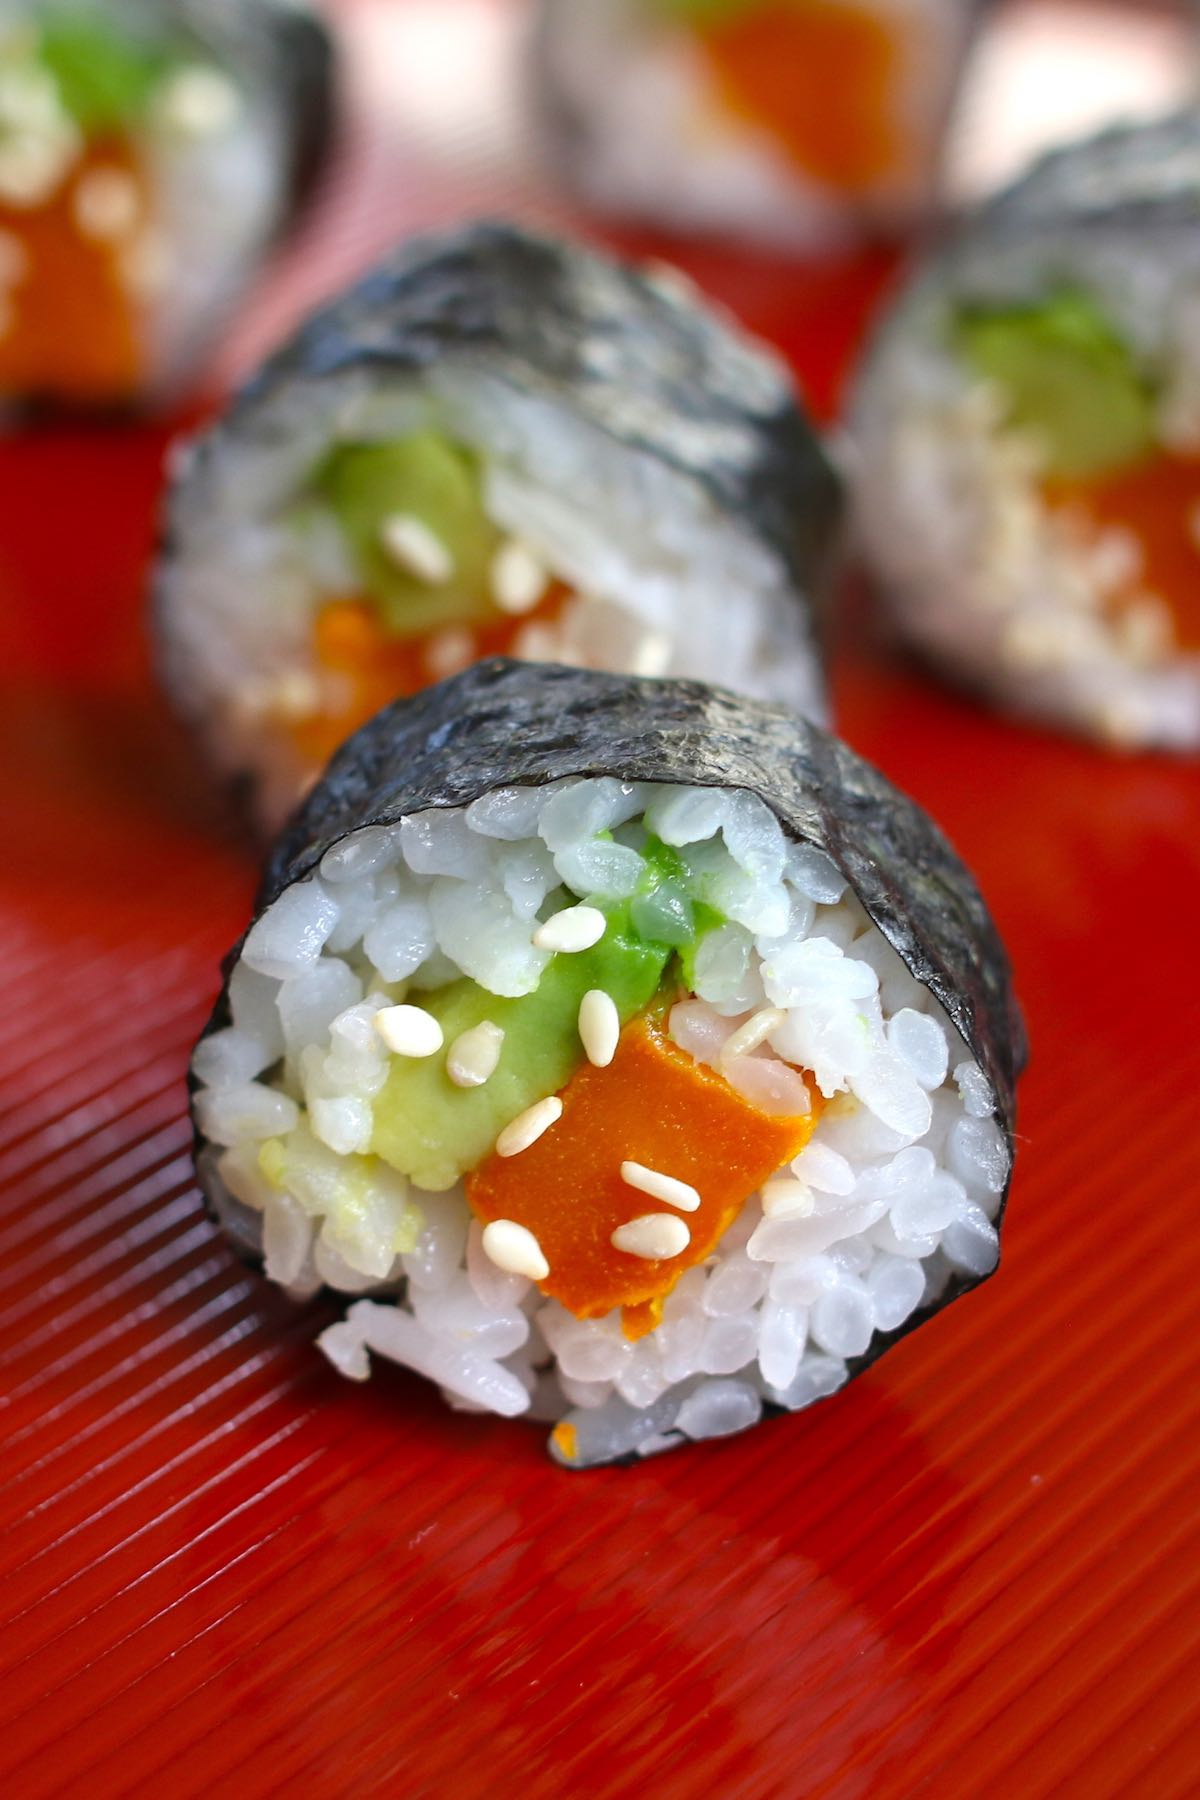 There's nothing more fun than learning how to make your own sushi at home! Once you learn the technique, there's no limit to the delicious flavor combinations you can create. But before you start rolling, you need all the proper supplies and ingredients. At the top of the list is to know the best Sushi Rice Brands.